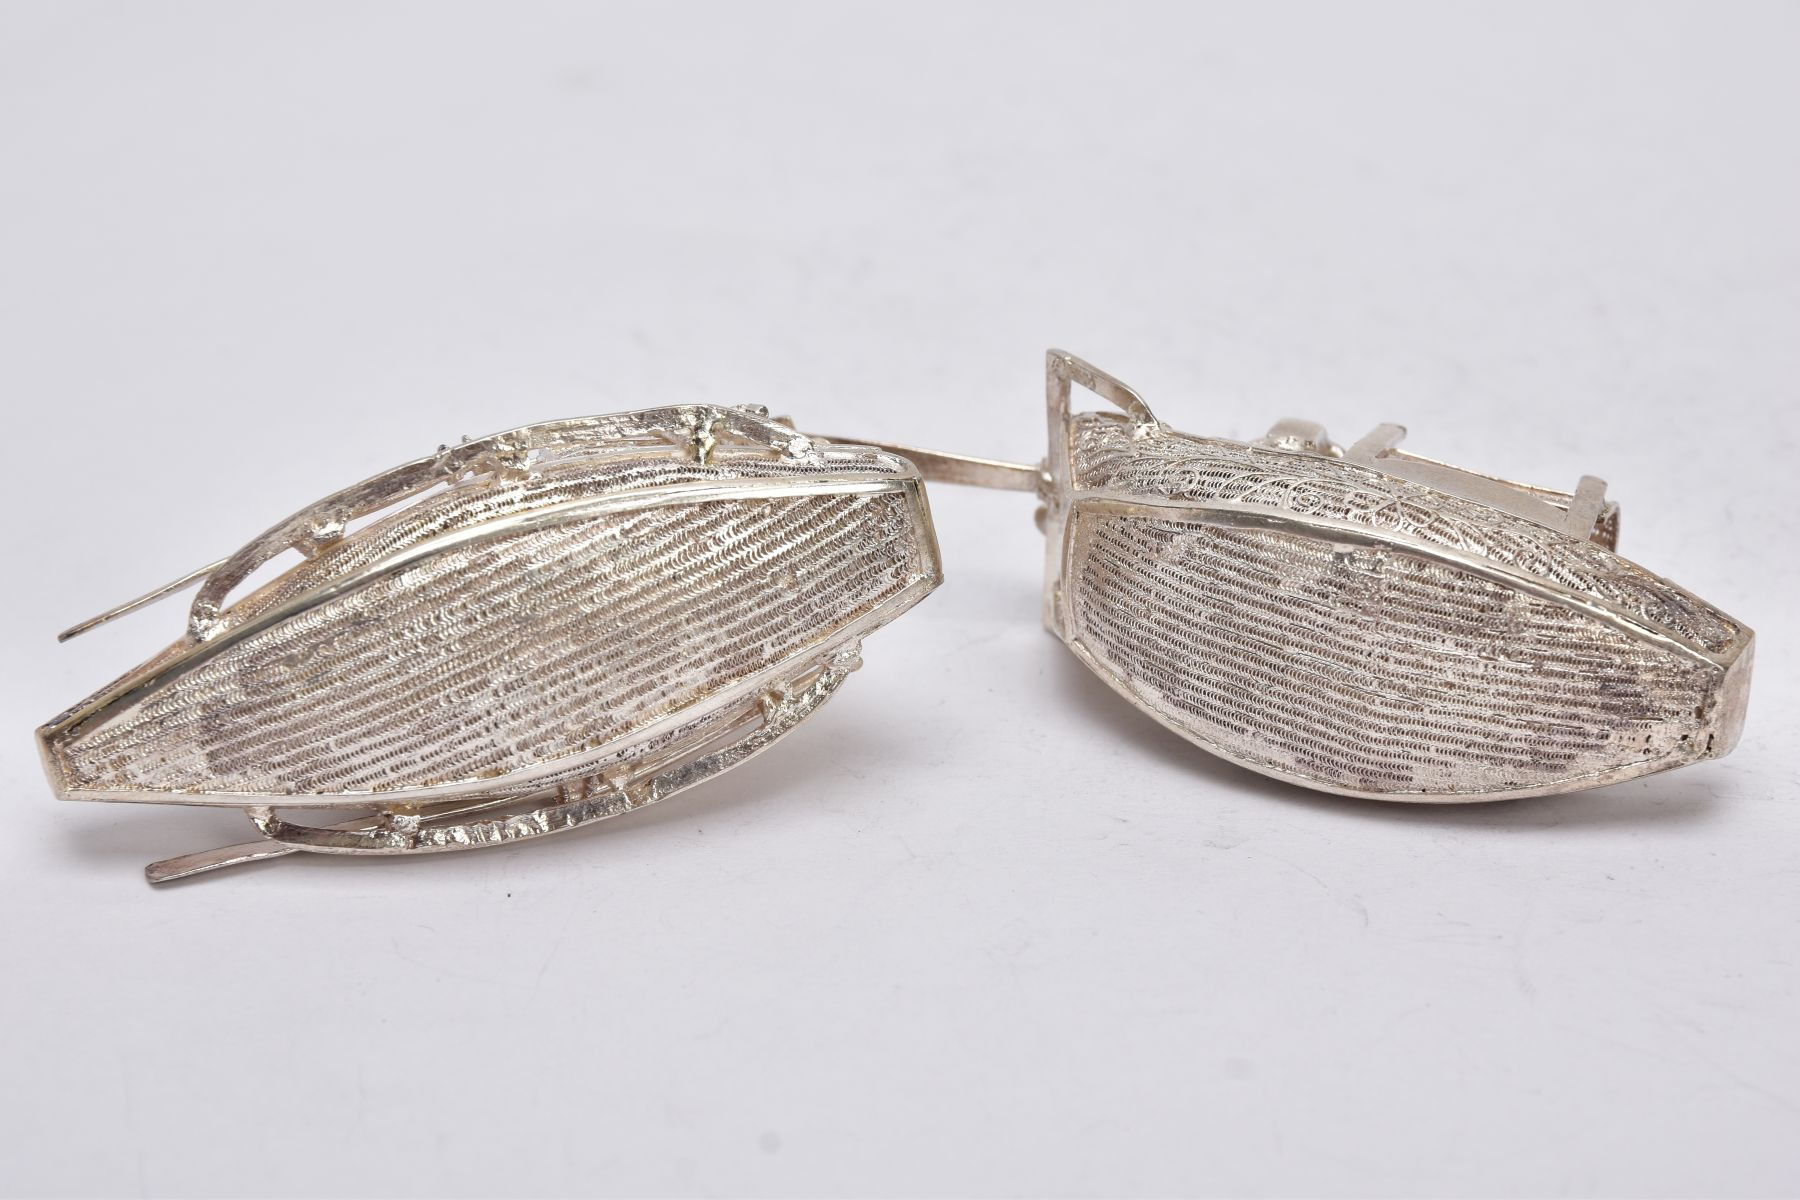 TWO MODERN ORIENTAL, WHITE METAL FILIGREE BOAT ORNAMENTS, one with a standing figure with paddle, - Image 5 of 8